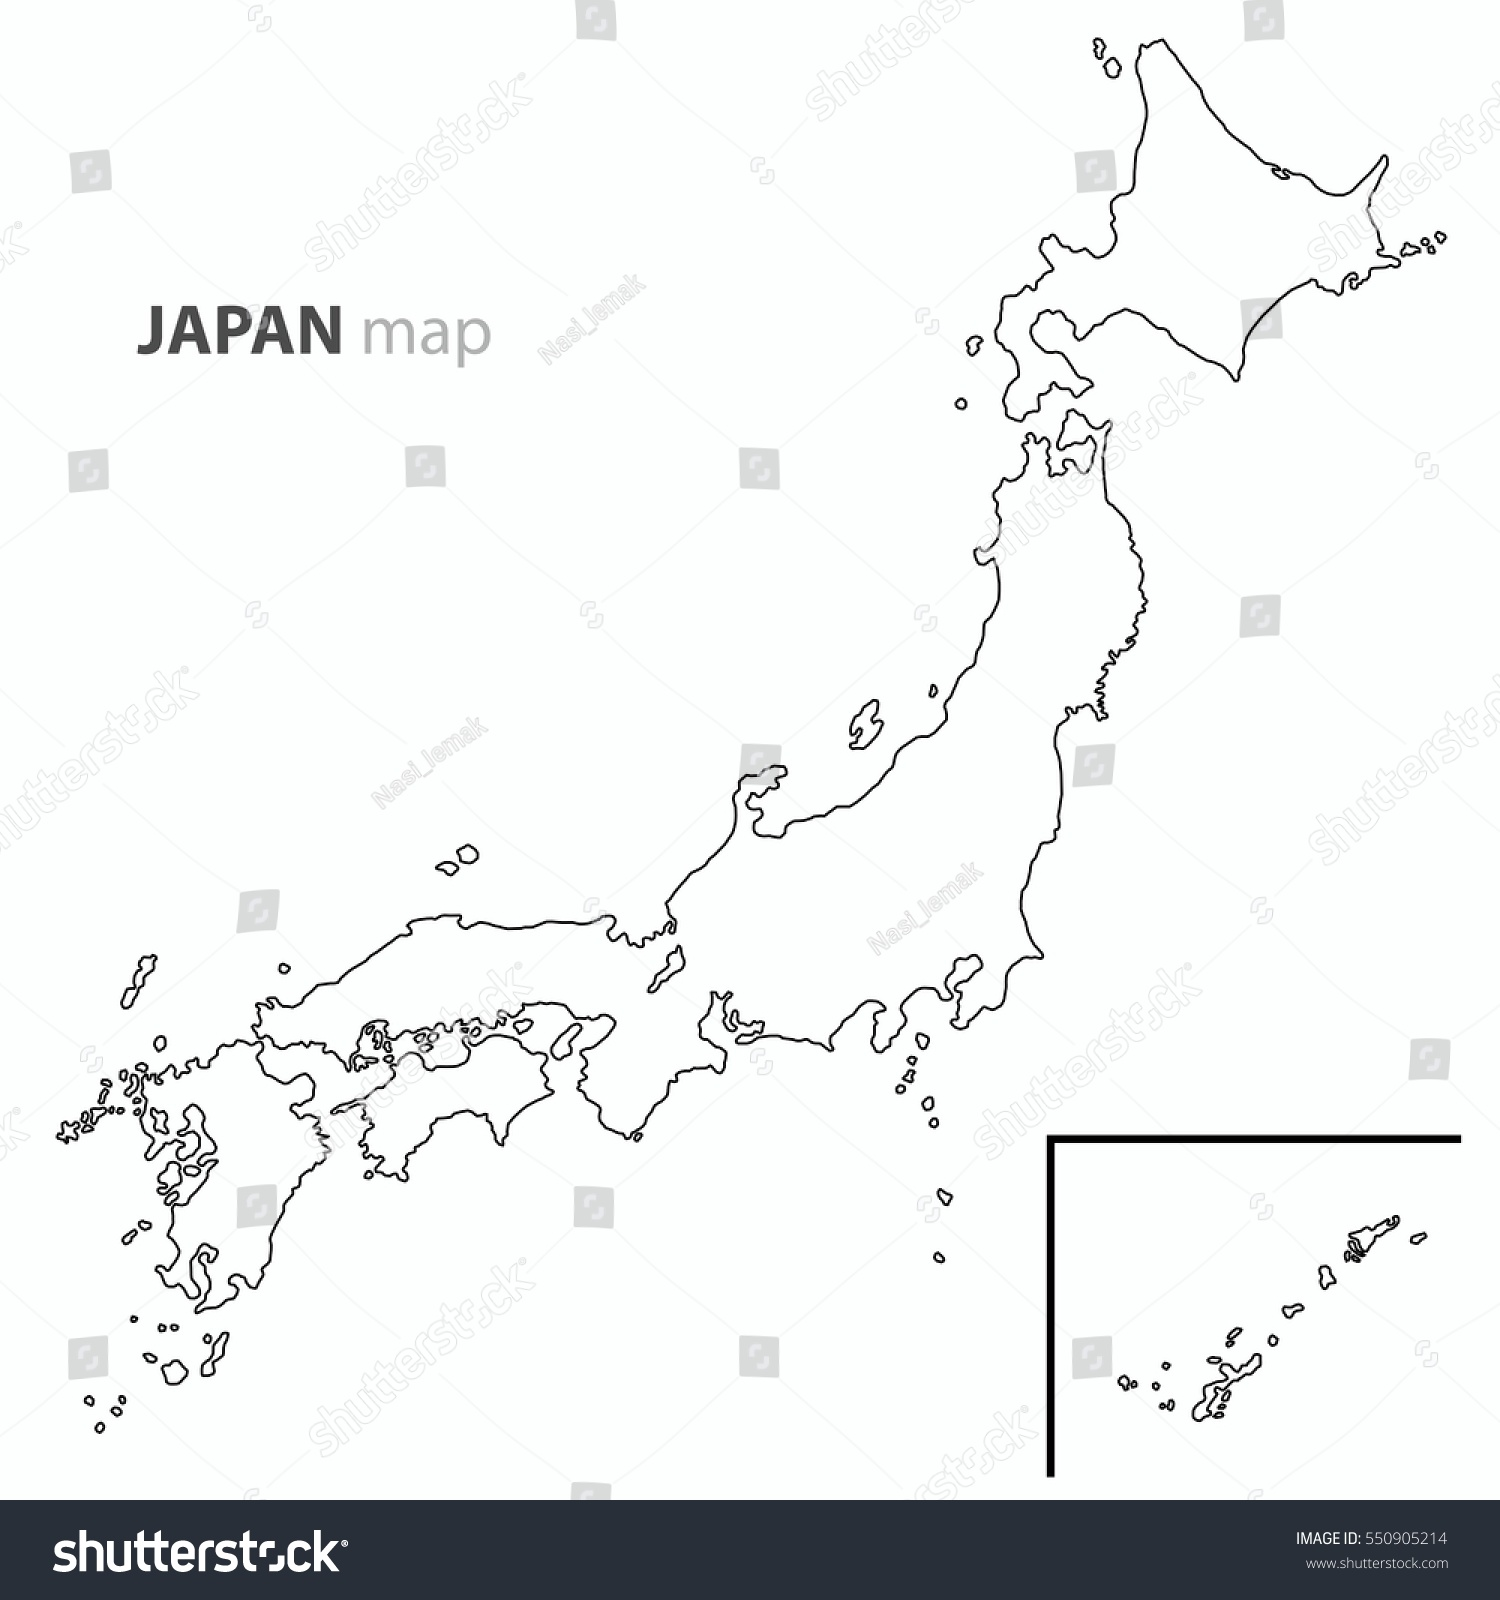 Japan Map Country Outline Vector Stock Vector Shutterstock - Japan map outline